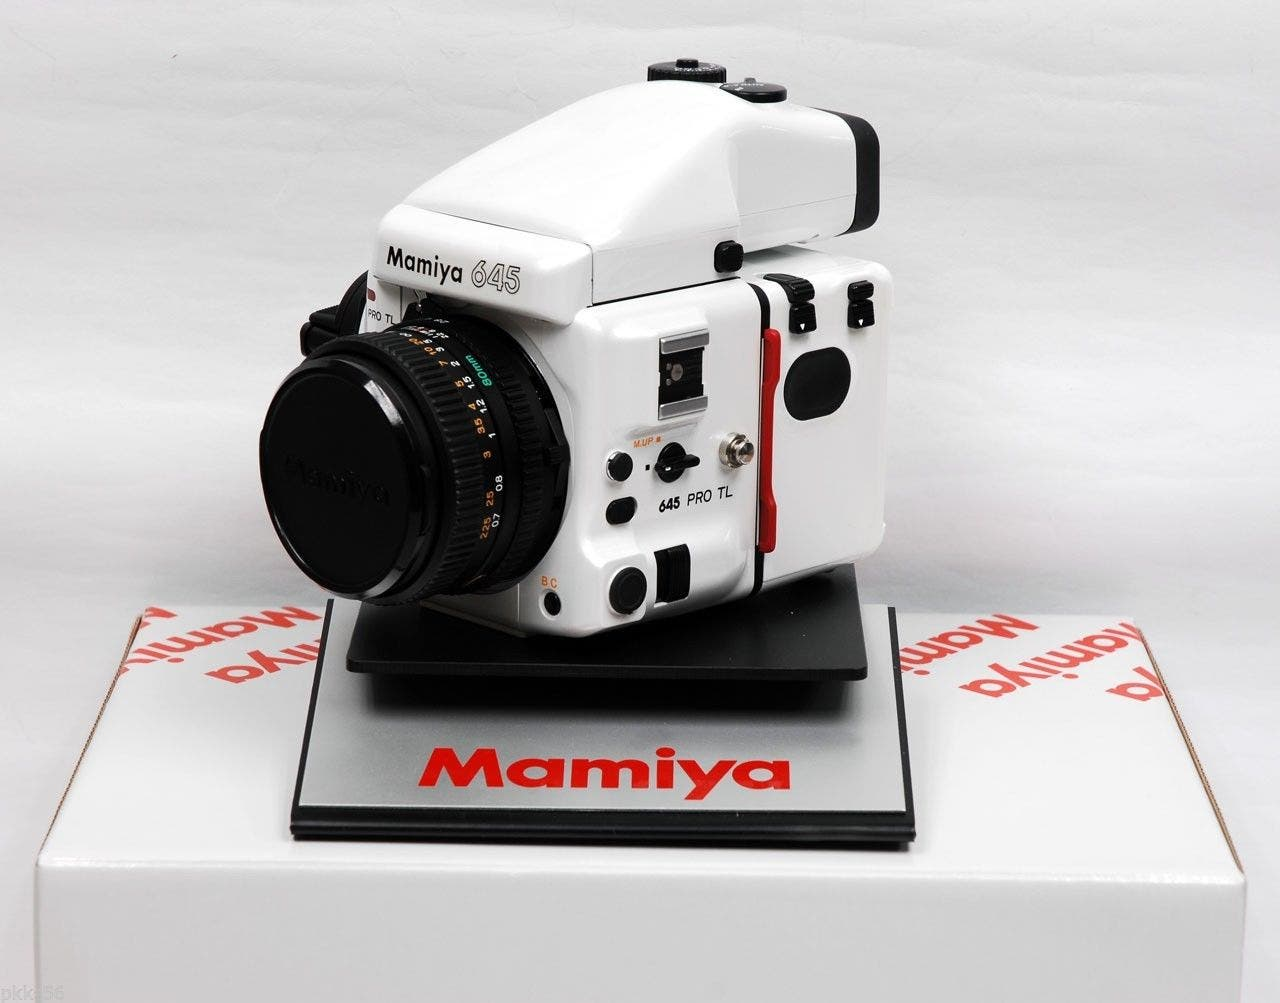 This Gorgeous Mamiya 645 PRO TL is a Rare Commemorative Edition